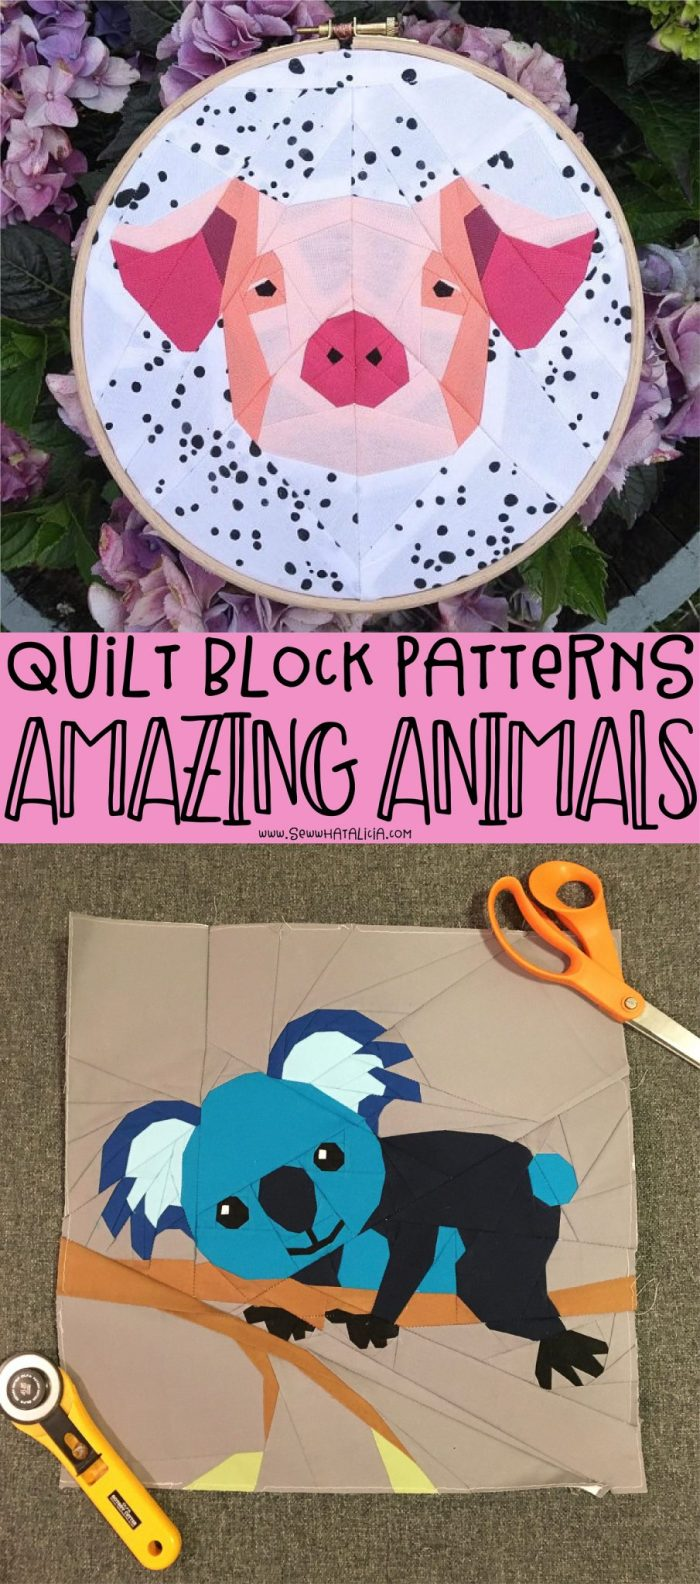 pictured animal paper piecing patterns with verbiage reading quilt block patterns amazing animals